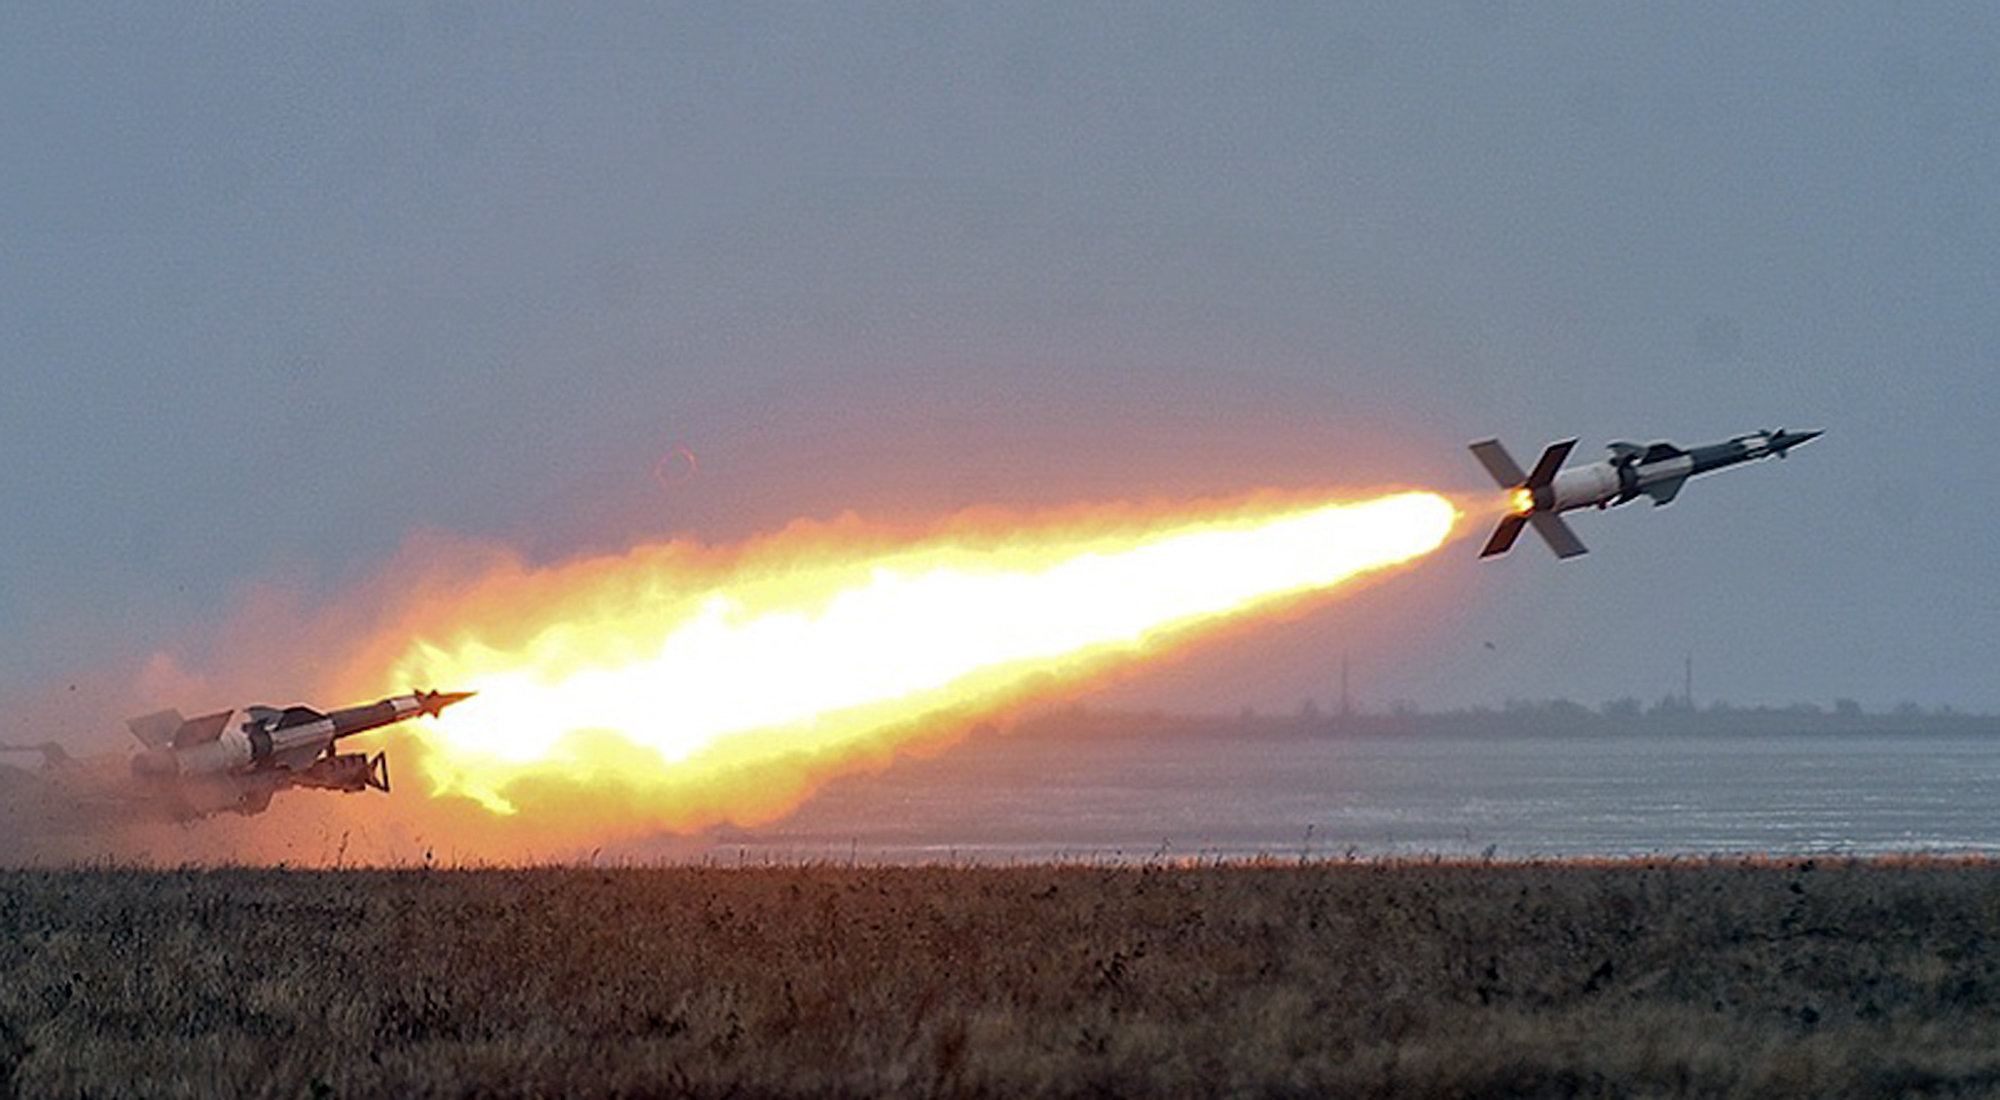 FILE - In this photo released by the Ukrainian National Security and Defense Council, an anti-aircraft rocket system is tested at a military training ground Odessa region, Ukraine, Dec. 5, 2018. The Ukrainian military has been on increased readiness ...